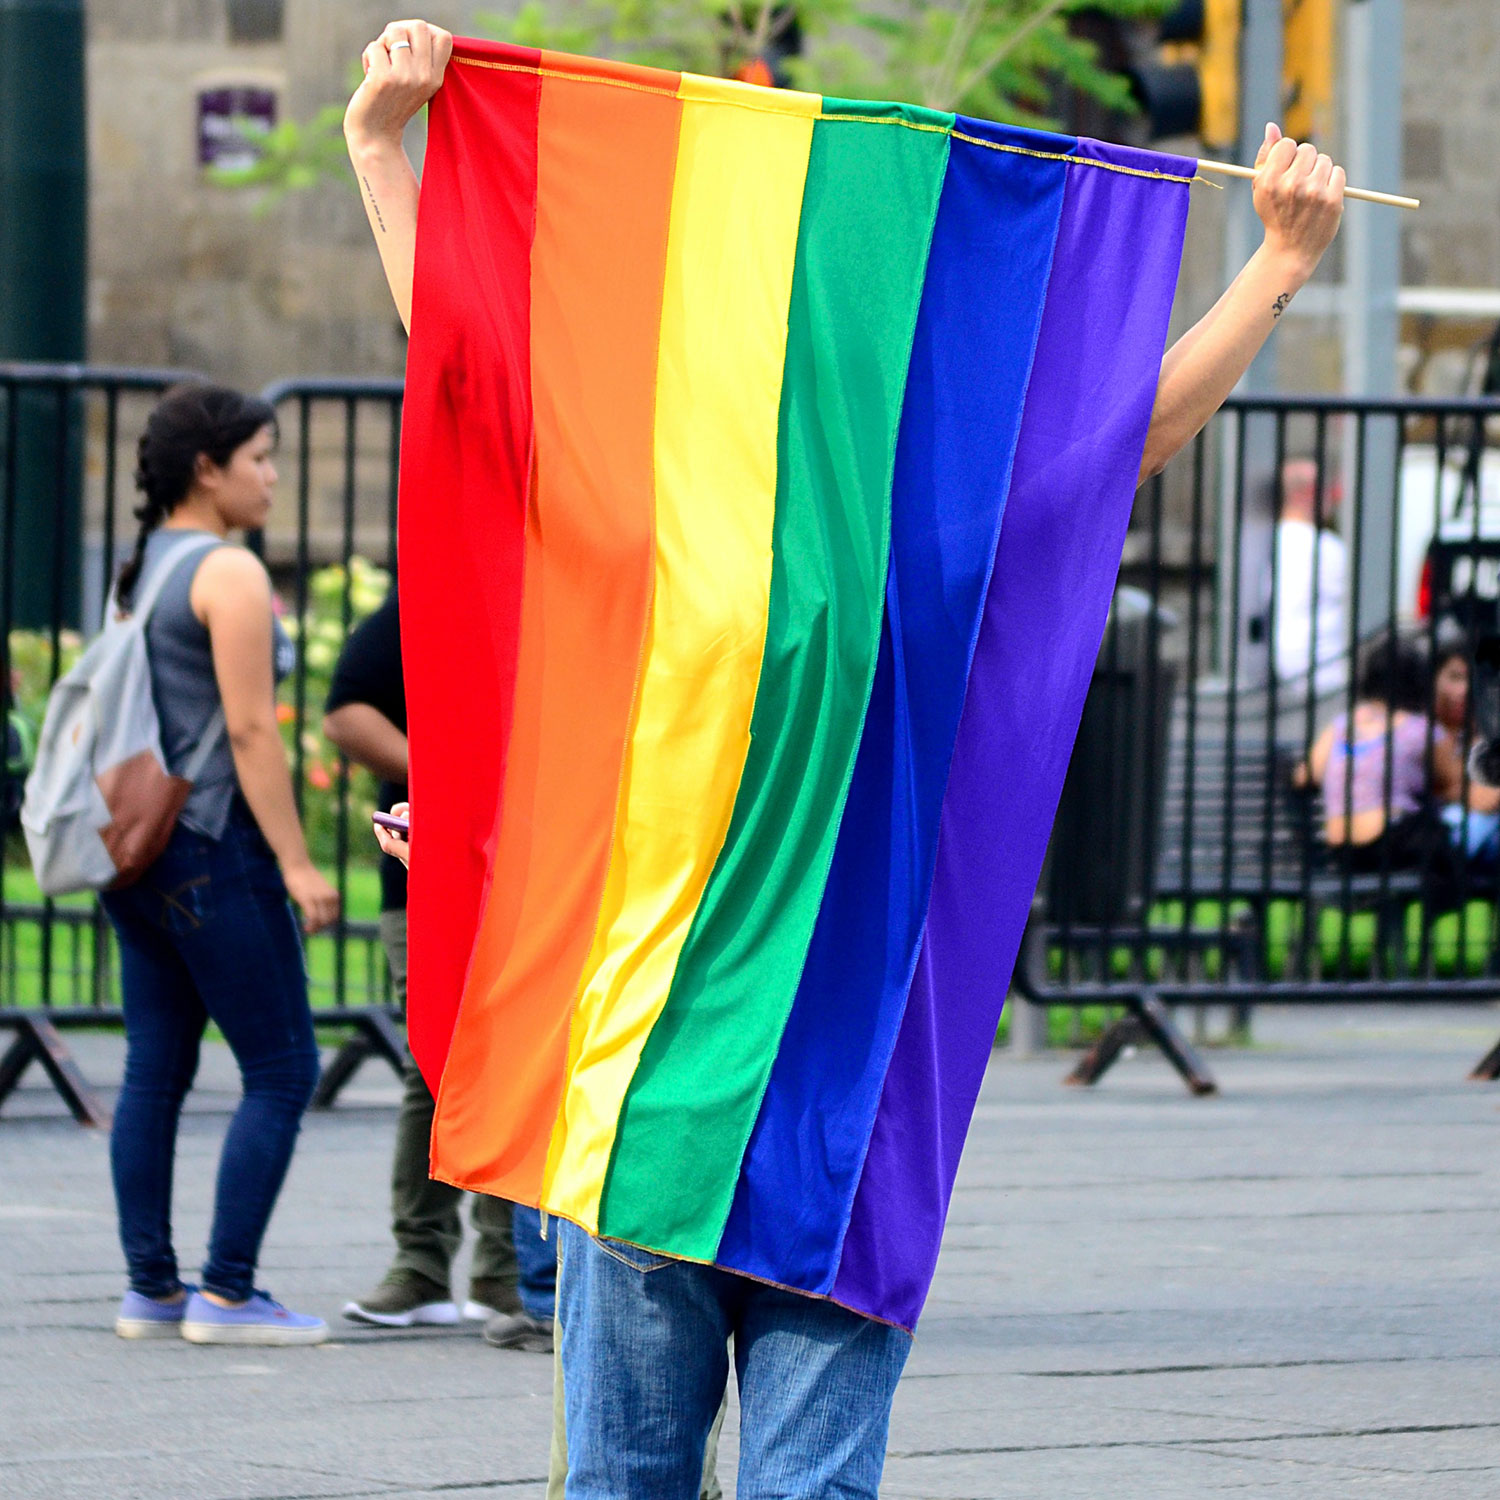 Person holding a rainbow flag to mask someone